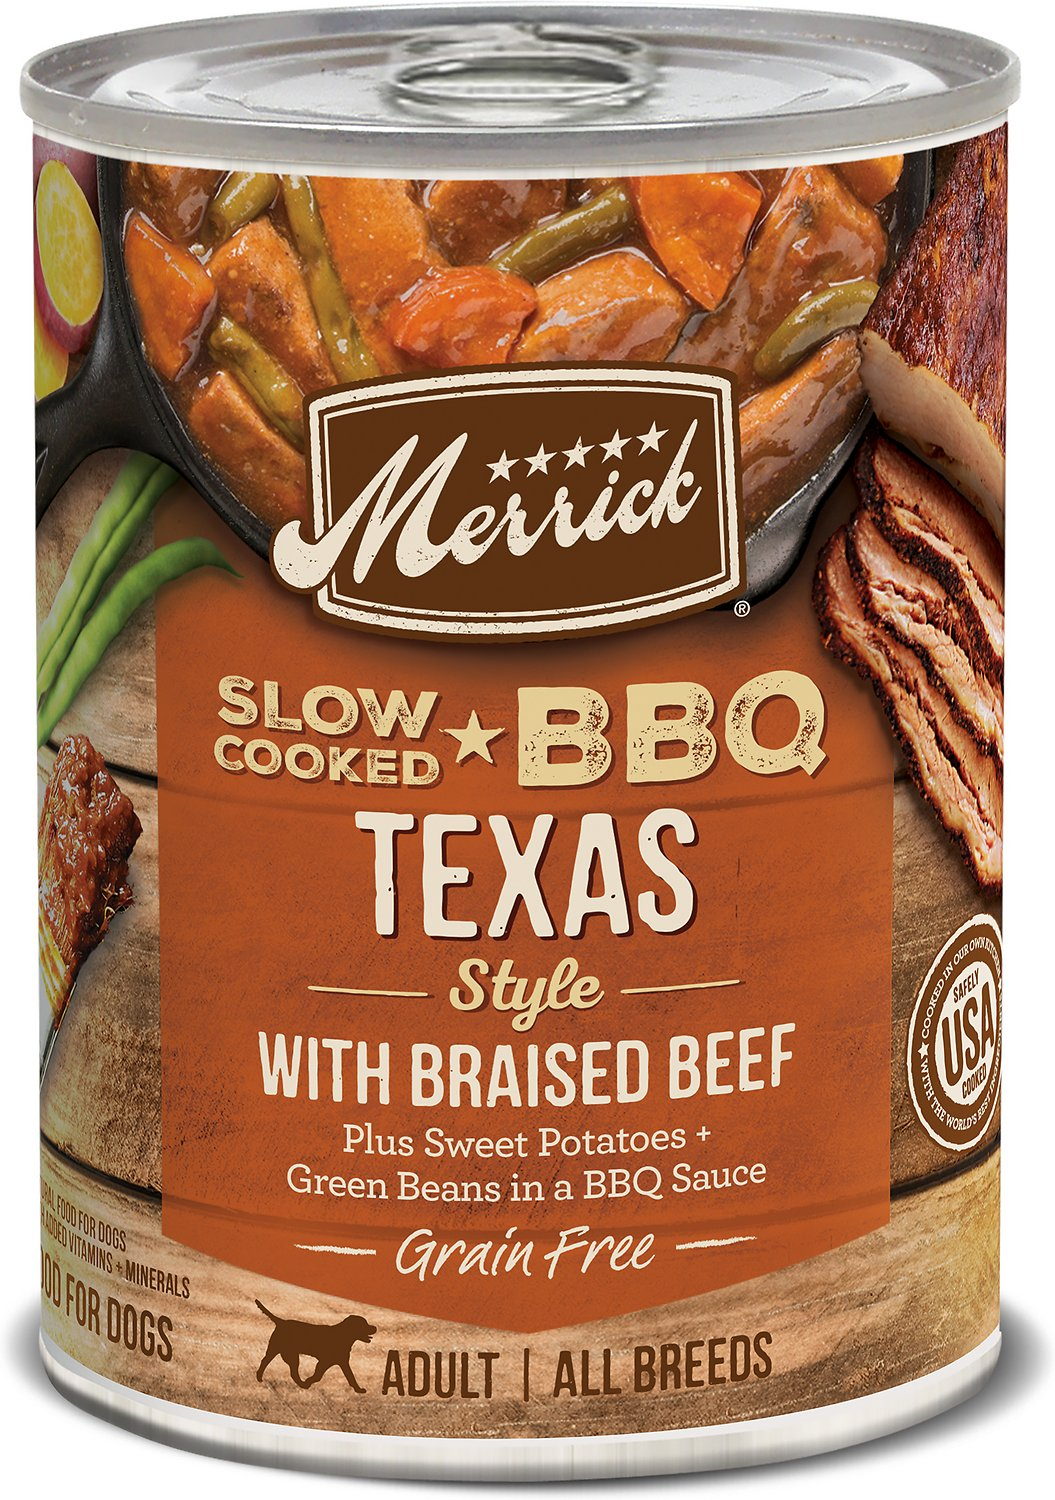 Merrick Slow-Cooked BBQ Texas Style with Braised Beef Canned Dog Food, 12.7-oz